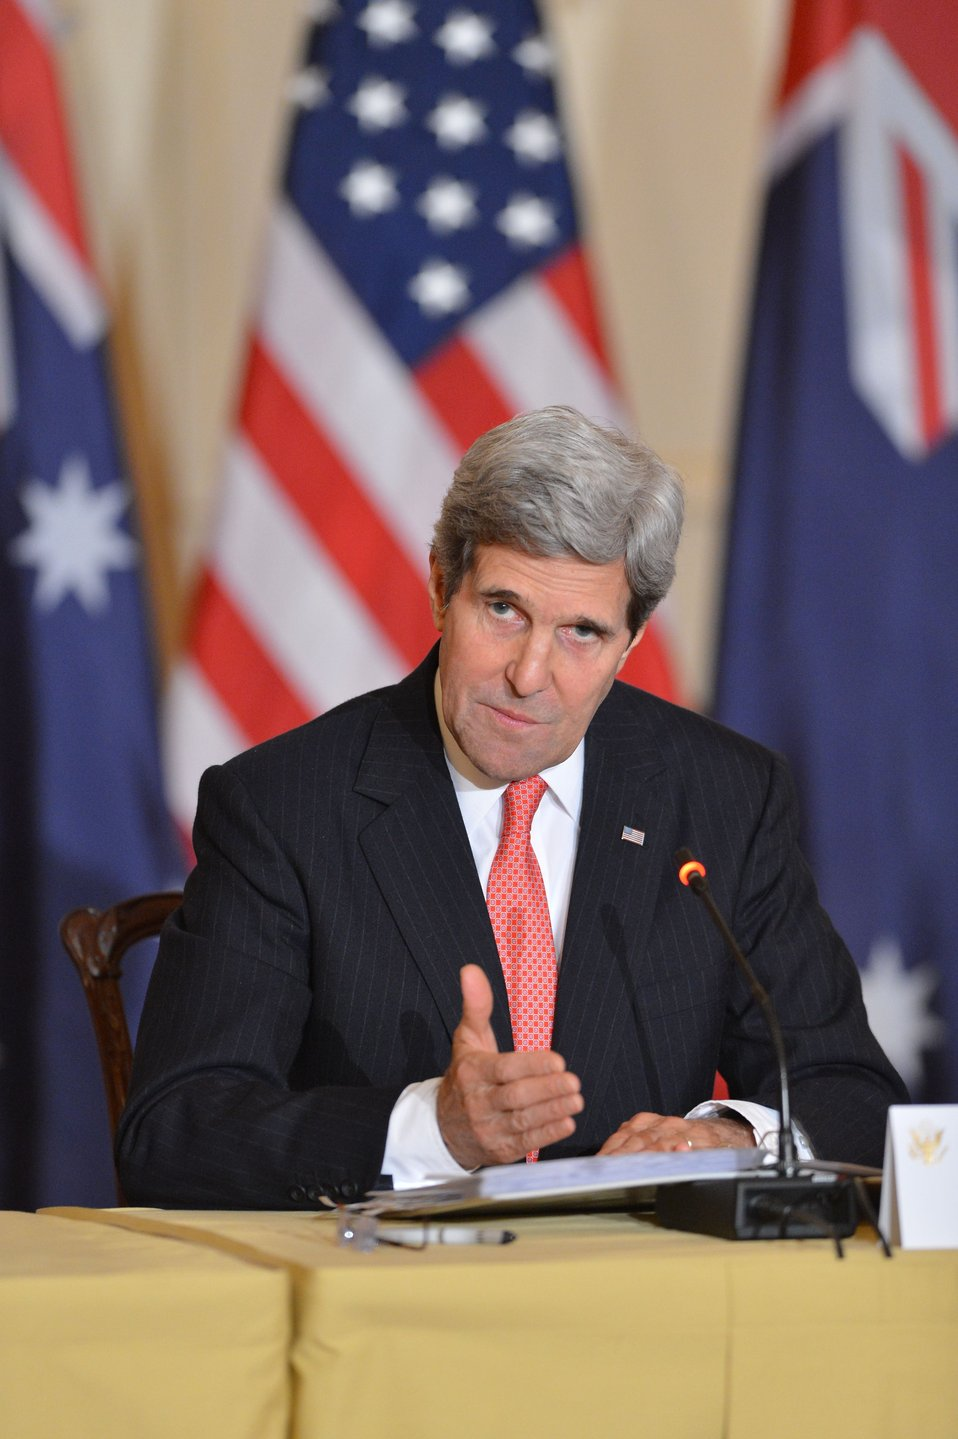 Secretary Kerry Addresses Reporters at the Australia-United States Ministerial Consultations